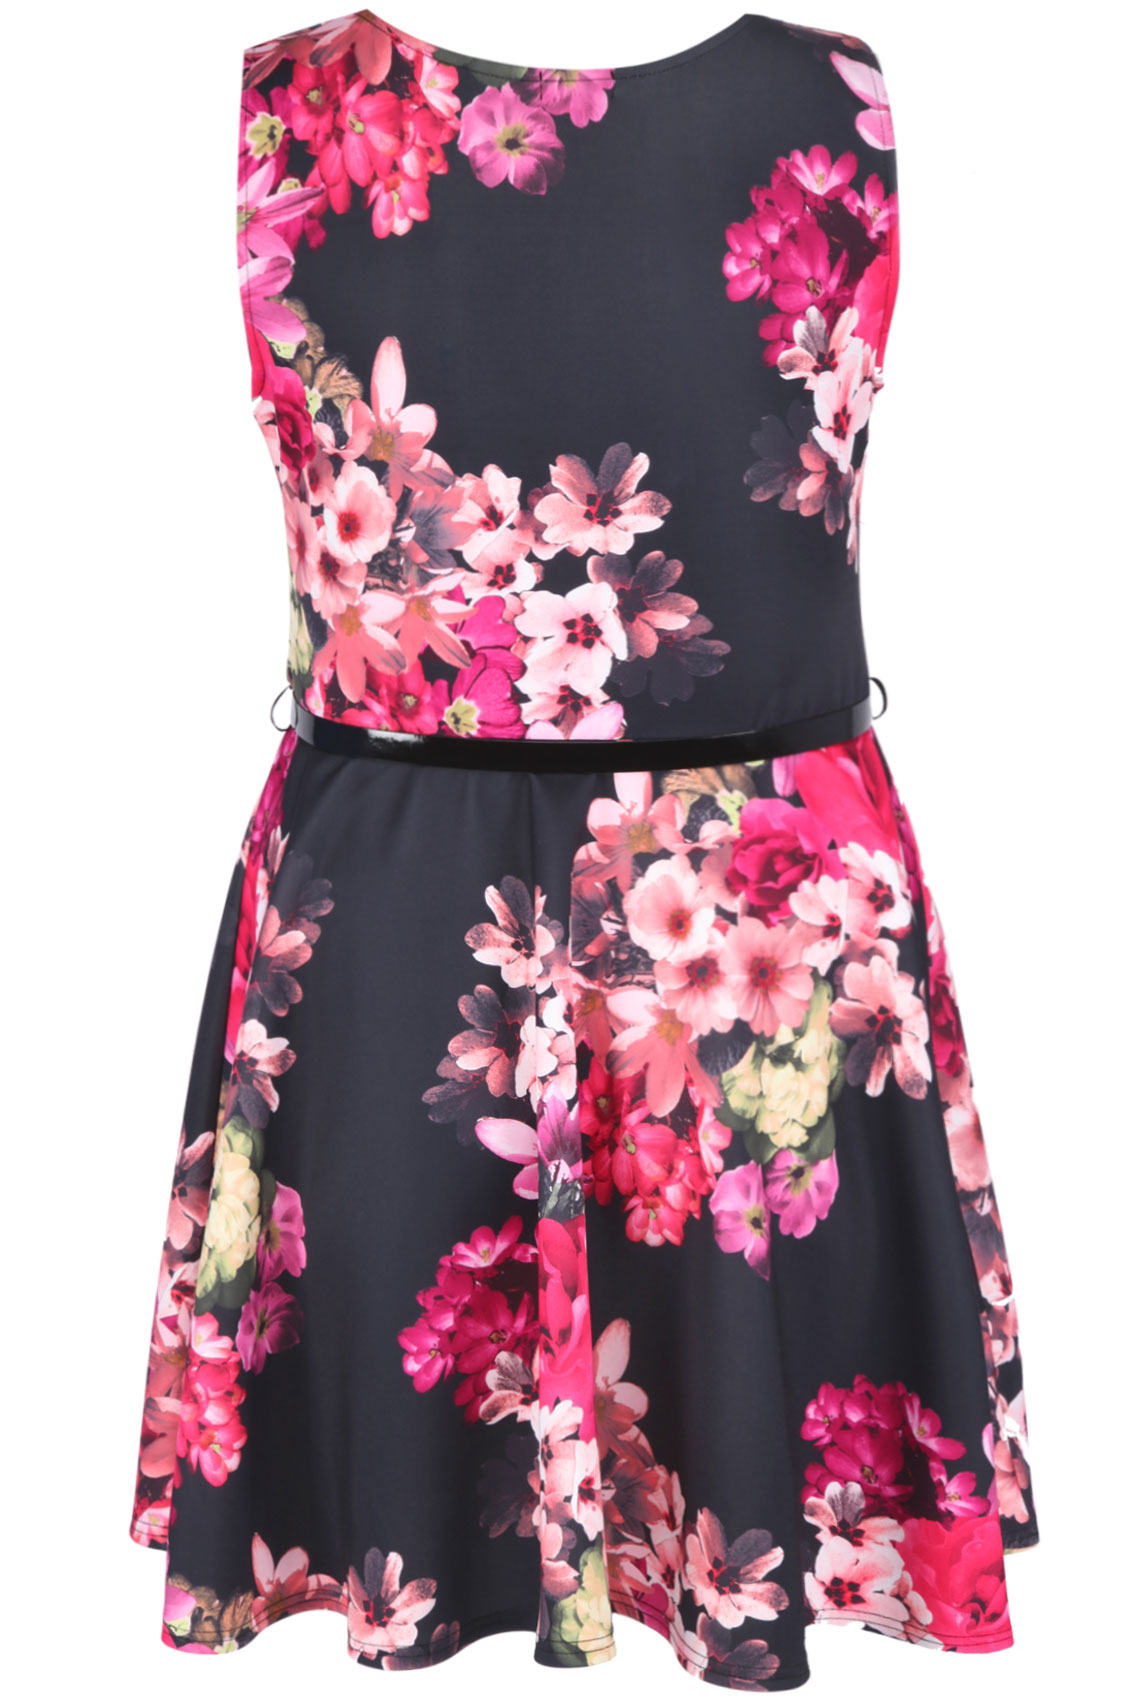 black and pink tropical floral skater dress with patent